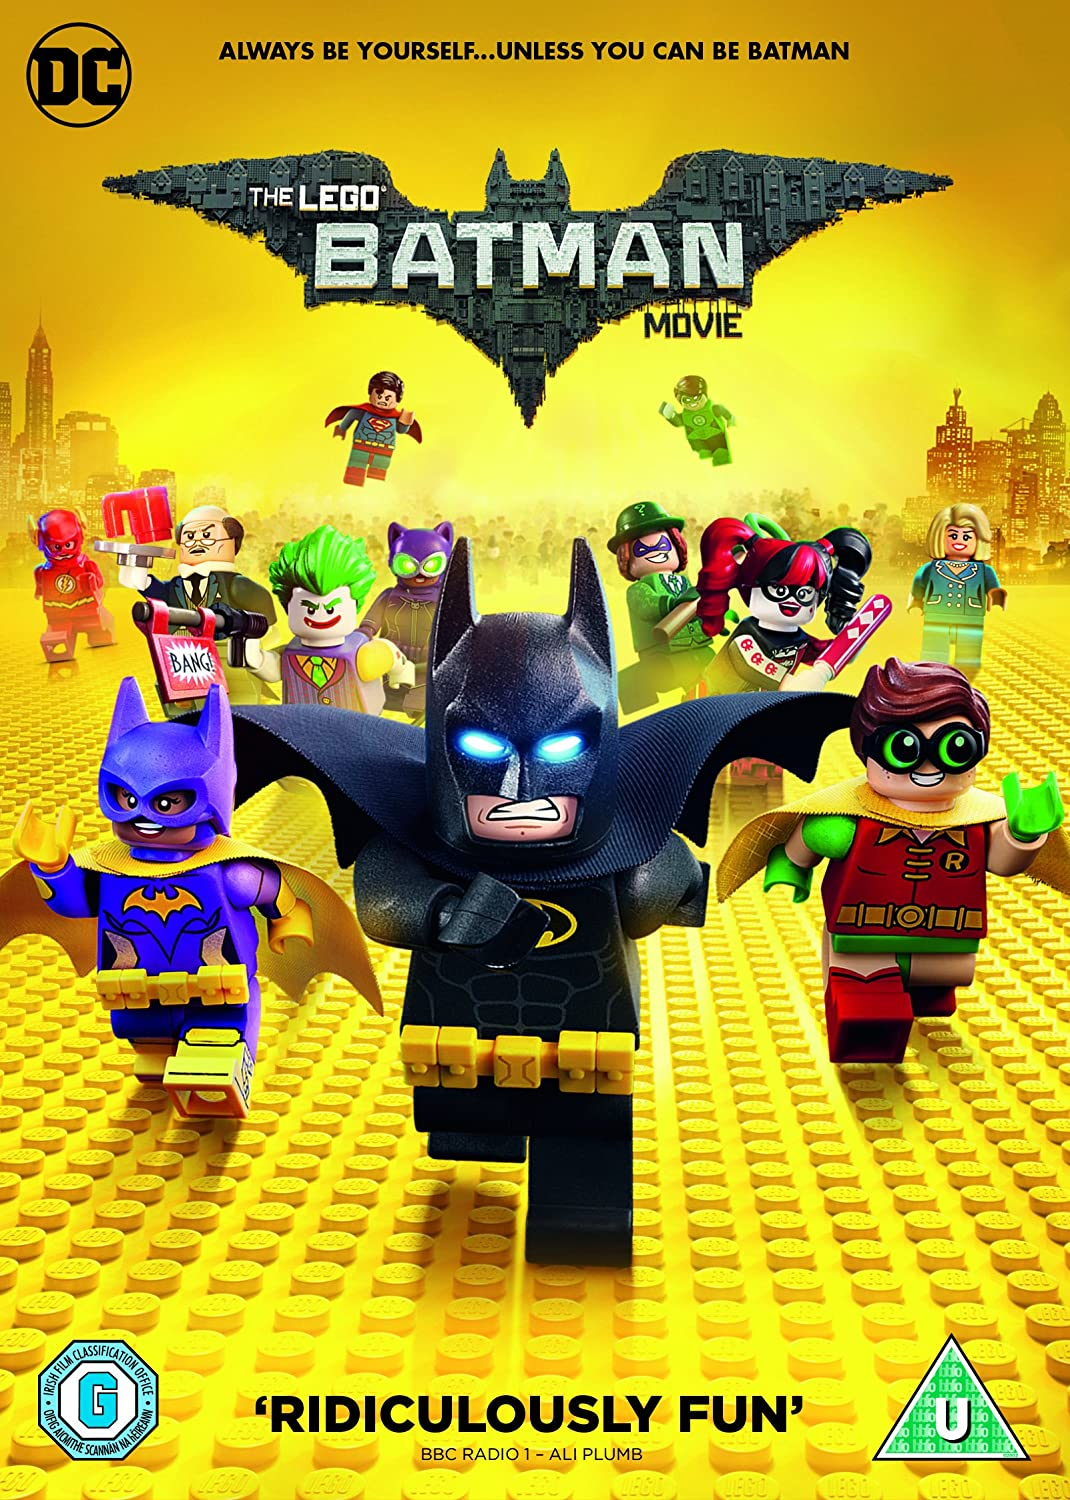 Amazon Com The Lego Batman Movie Dvd Digital Download 2017 Chris Mckay Movies Tv